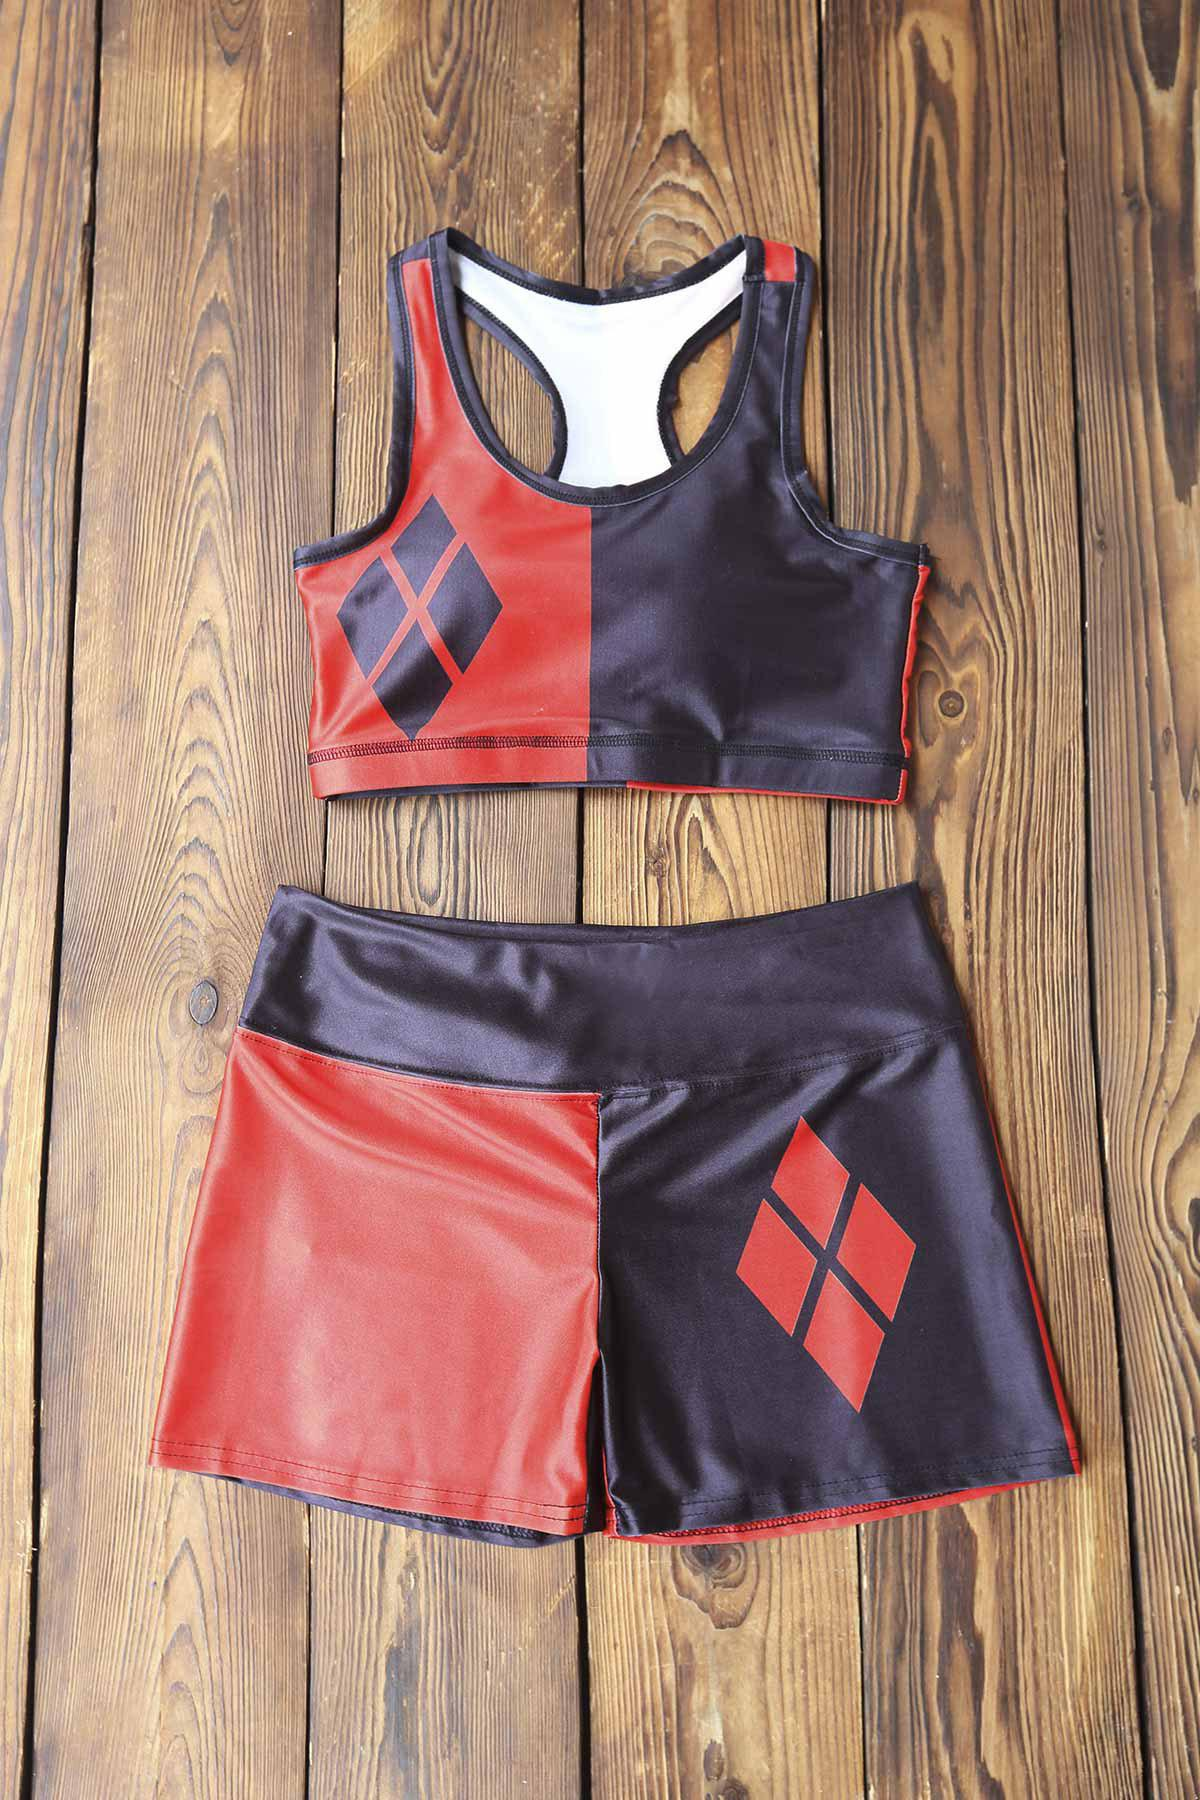 Stylish Women's U Neck Color Block Tank Top and Shorts Suit - RED/BLACK M